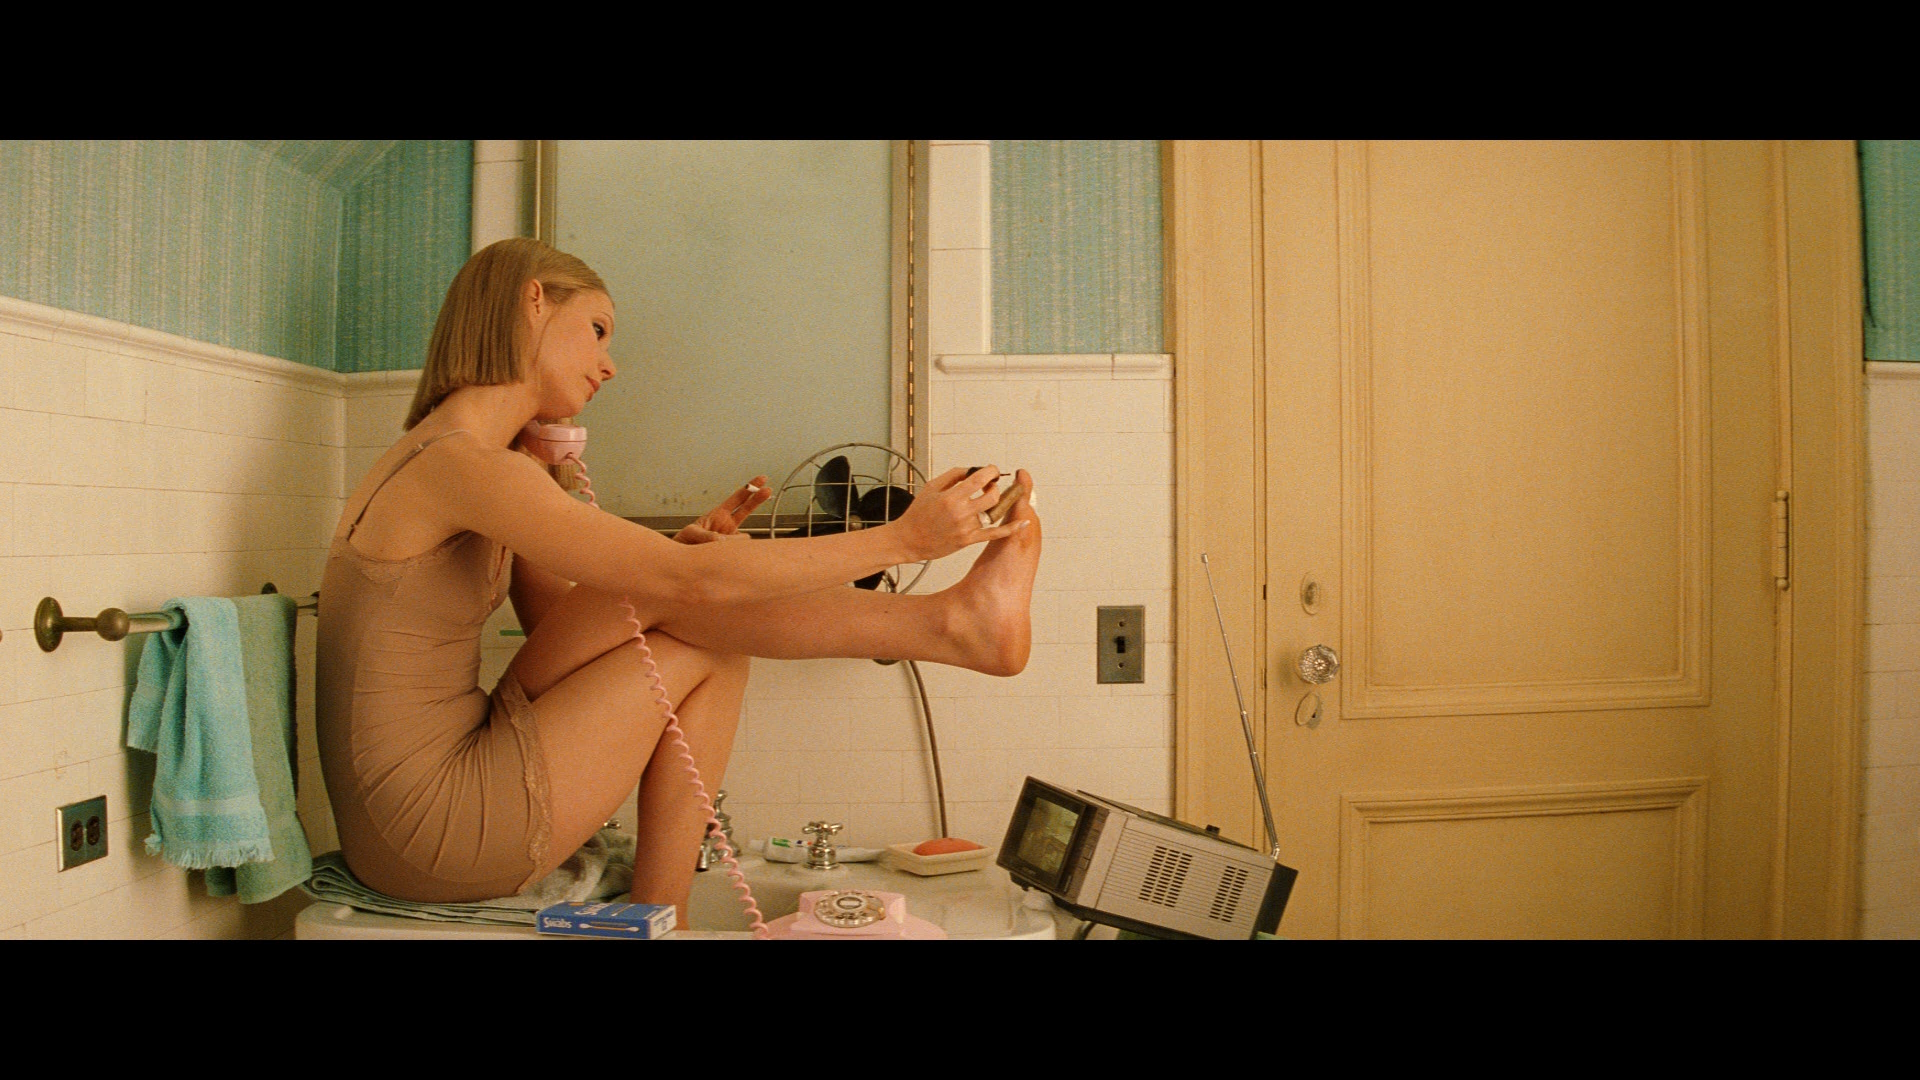 The Royal Tenenbaums | Wes Anderson | 2001